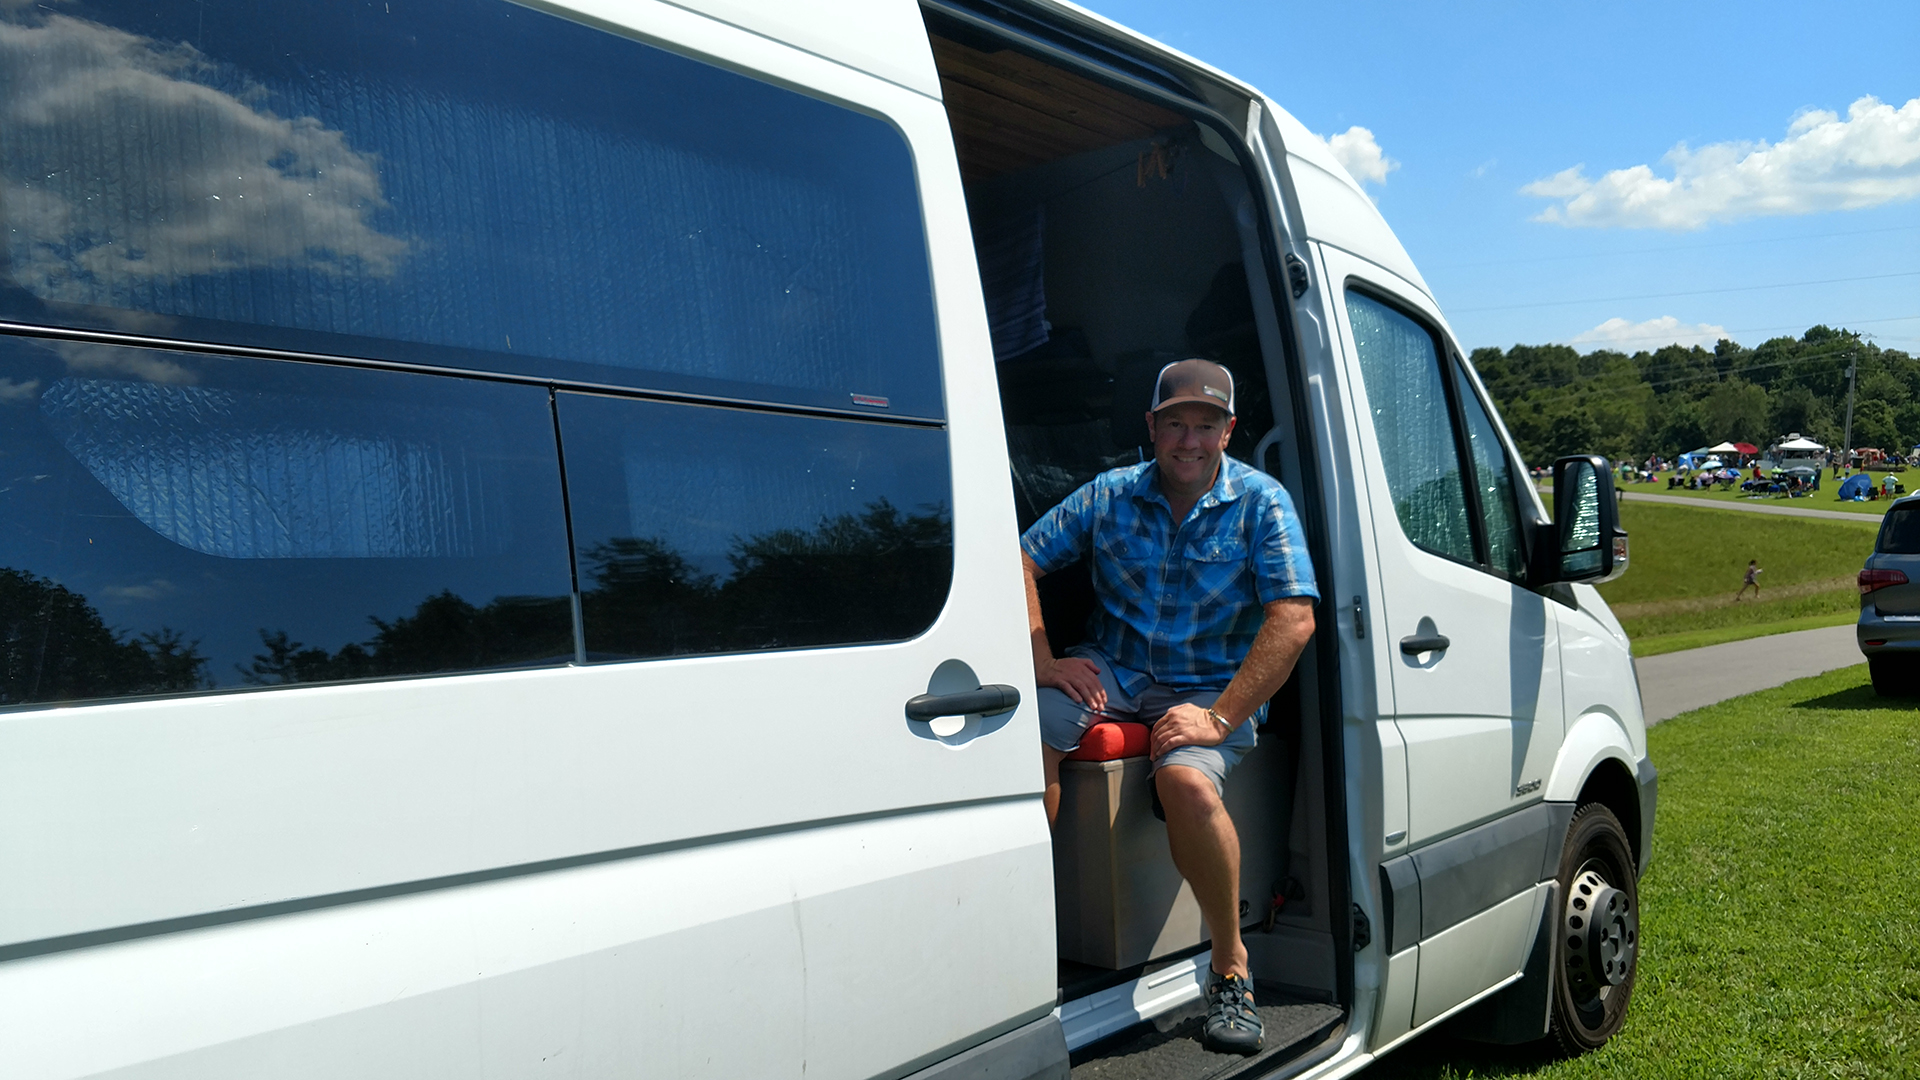 Danny and the Van